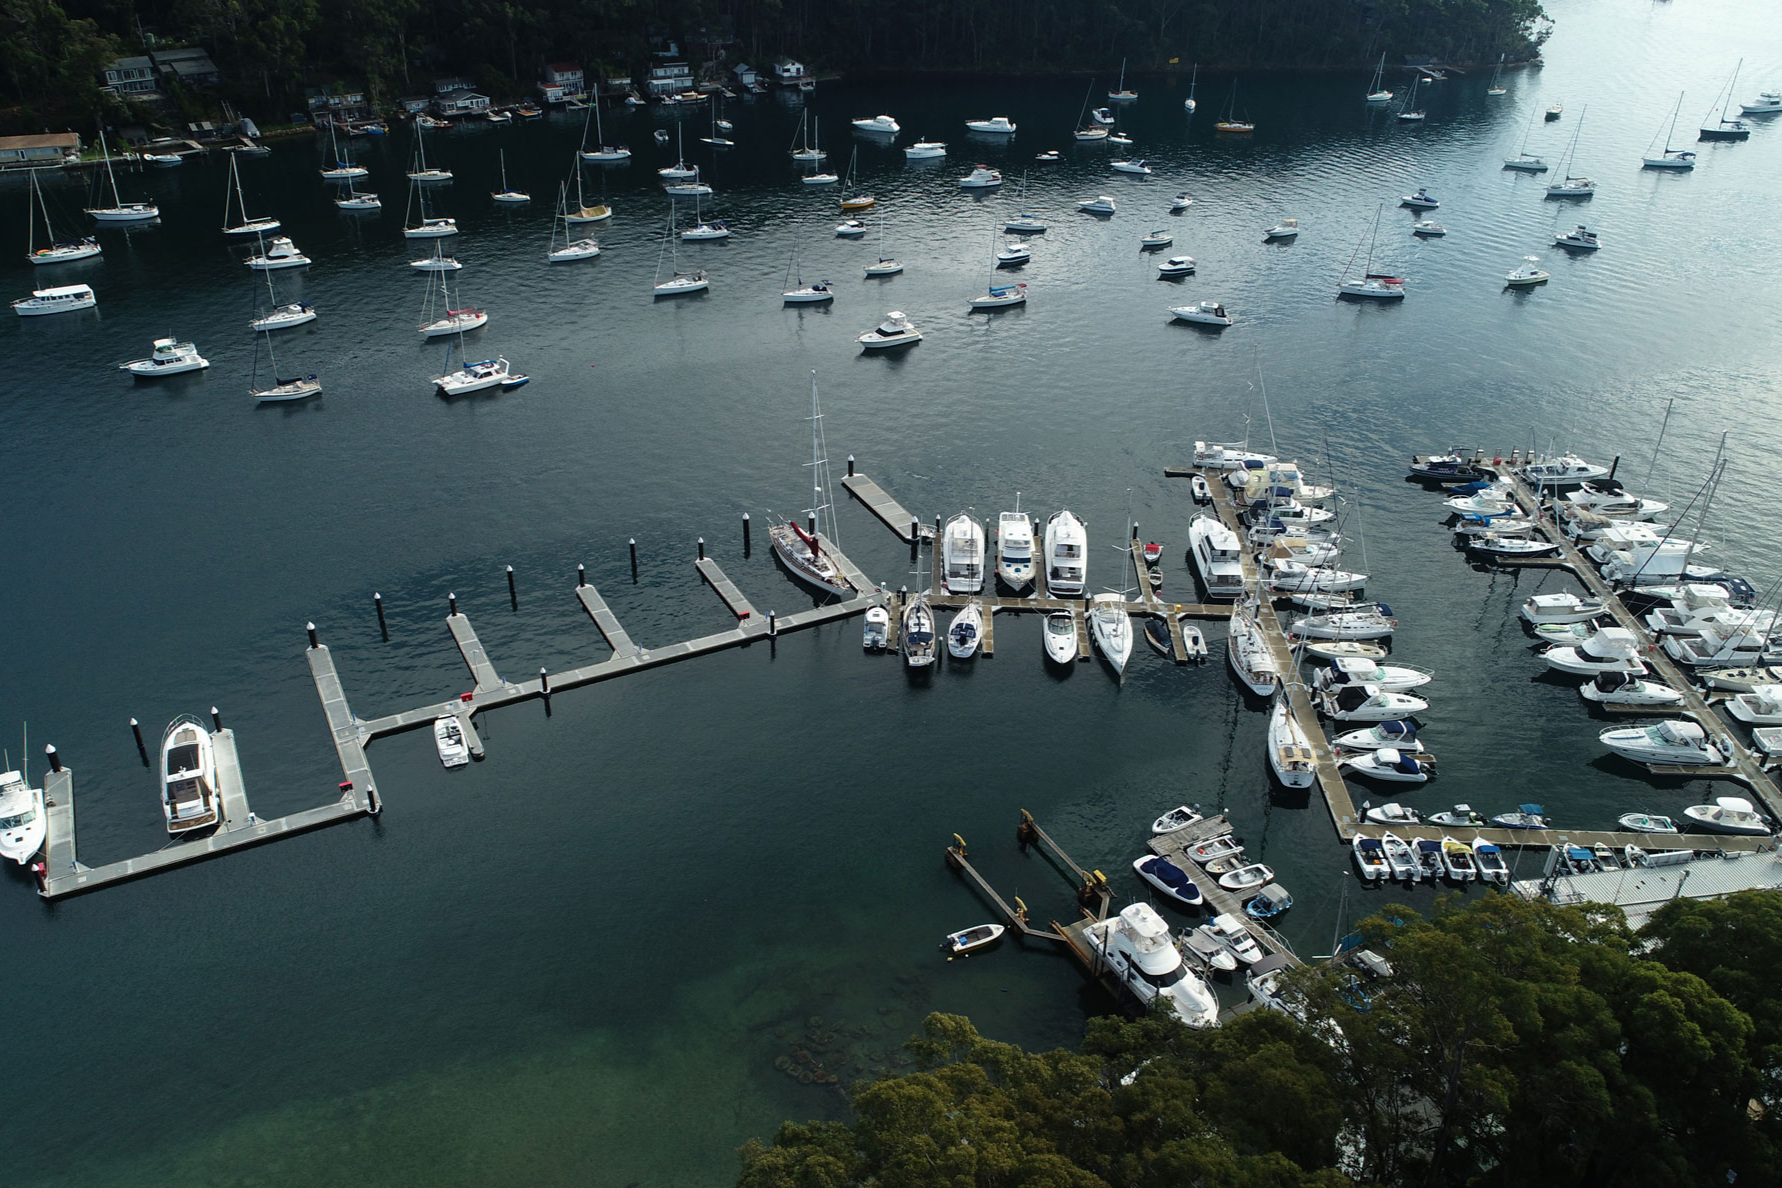 Marina accommodation for 200 vessels - Located in the heart of one of the best sailing areas and yachting environments in the world, HolmePort marinas at Church Point is located at the mouth of McCarrs Creek on the southwestern end of Pittwater, Sydney surrounded by picturesque Broken Bay. The state-of-the-art marina offers accommodation for 200 vessels split between wet berths and swing moorings for boats up to 100ft (30m) in length. The site is tucked away in deep water sheltered from prevailing winds.